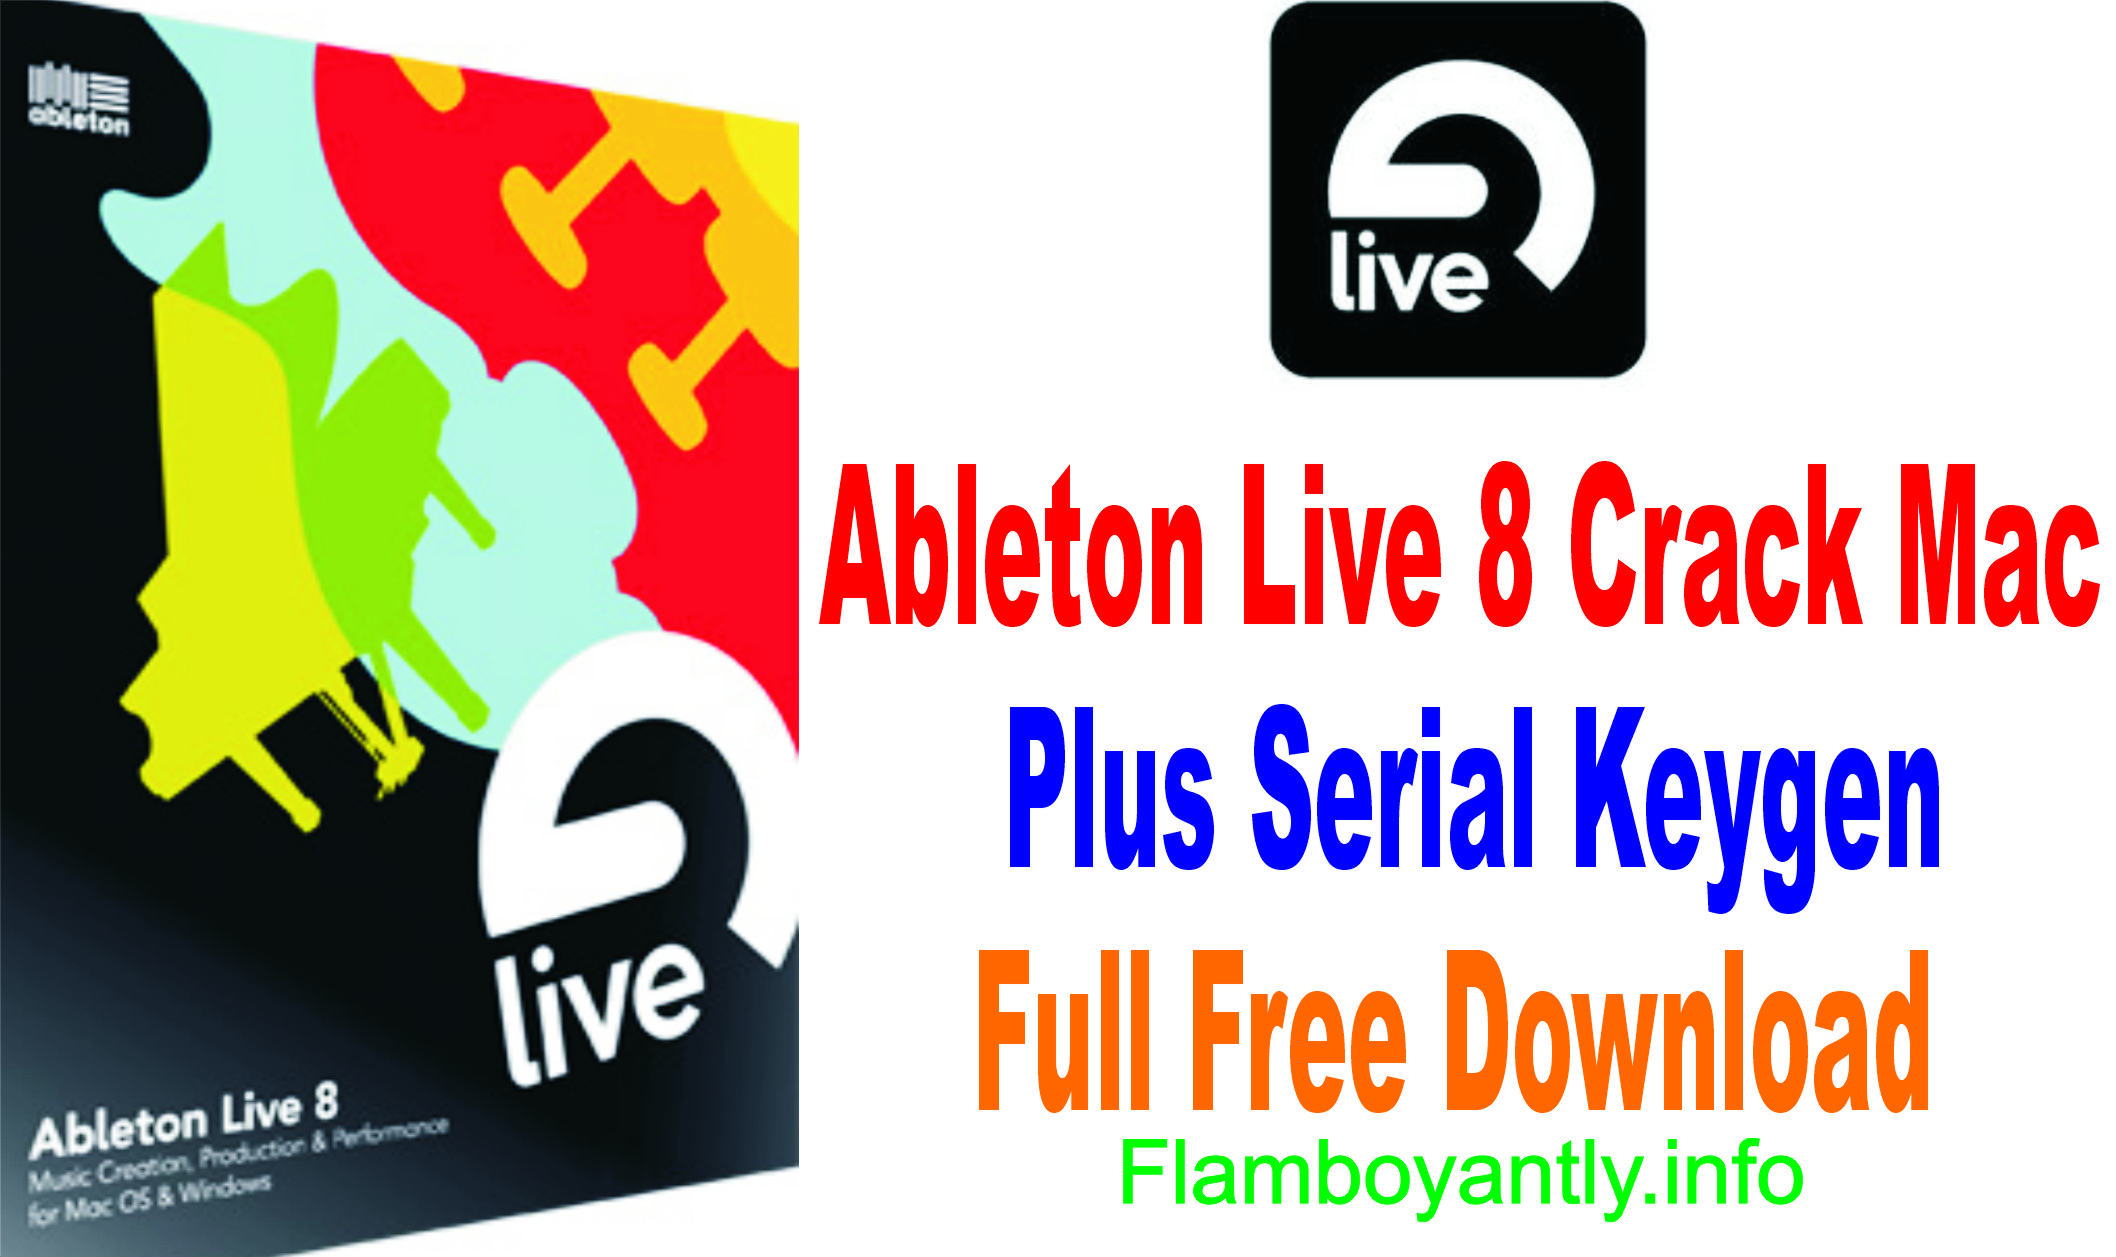 Ableton Live 8 Crack Mac Plus Serial Keygen Full Free Download